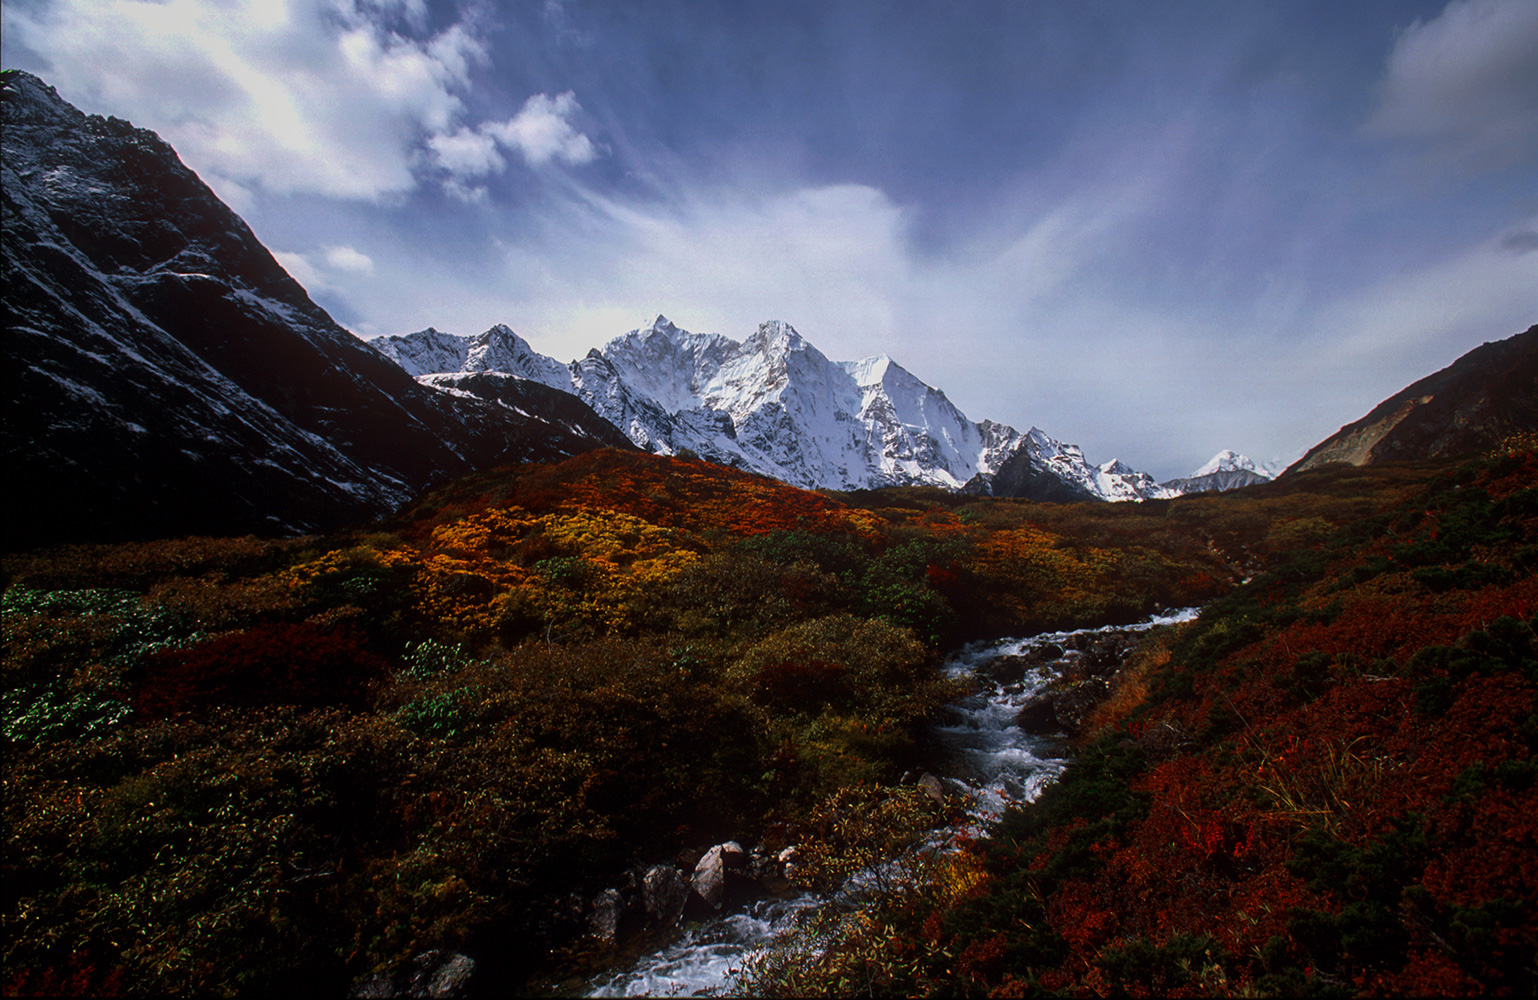 Beneath the towering north face of Chomolonzo (7677m), the incomparable Kharta Valley drains the eastern (Kangshung) face of Everest.Nikon F5, 17mm, Fuji Velvia 100